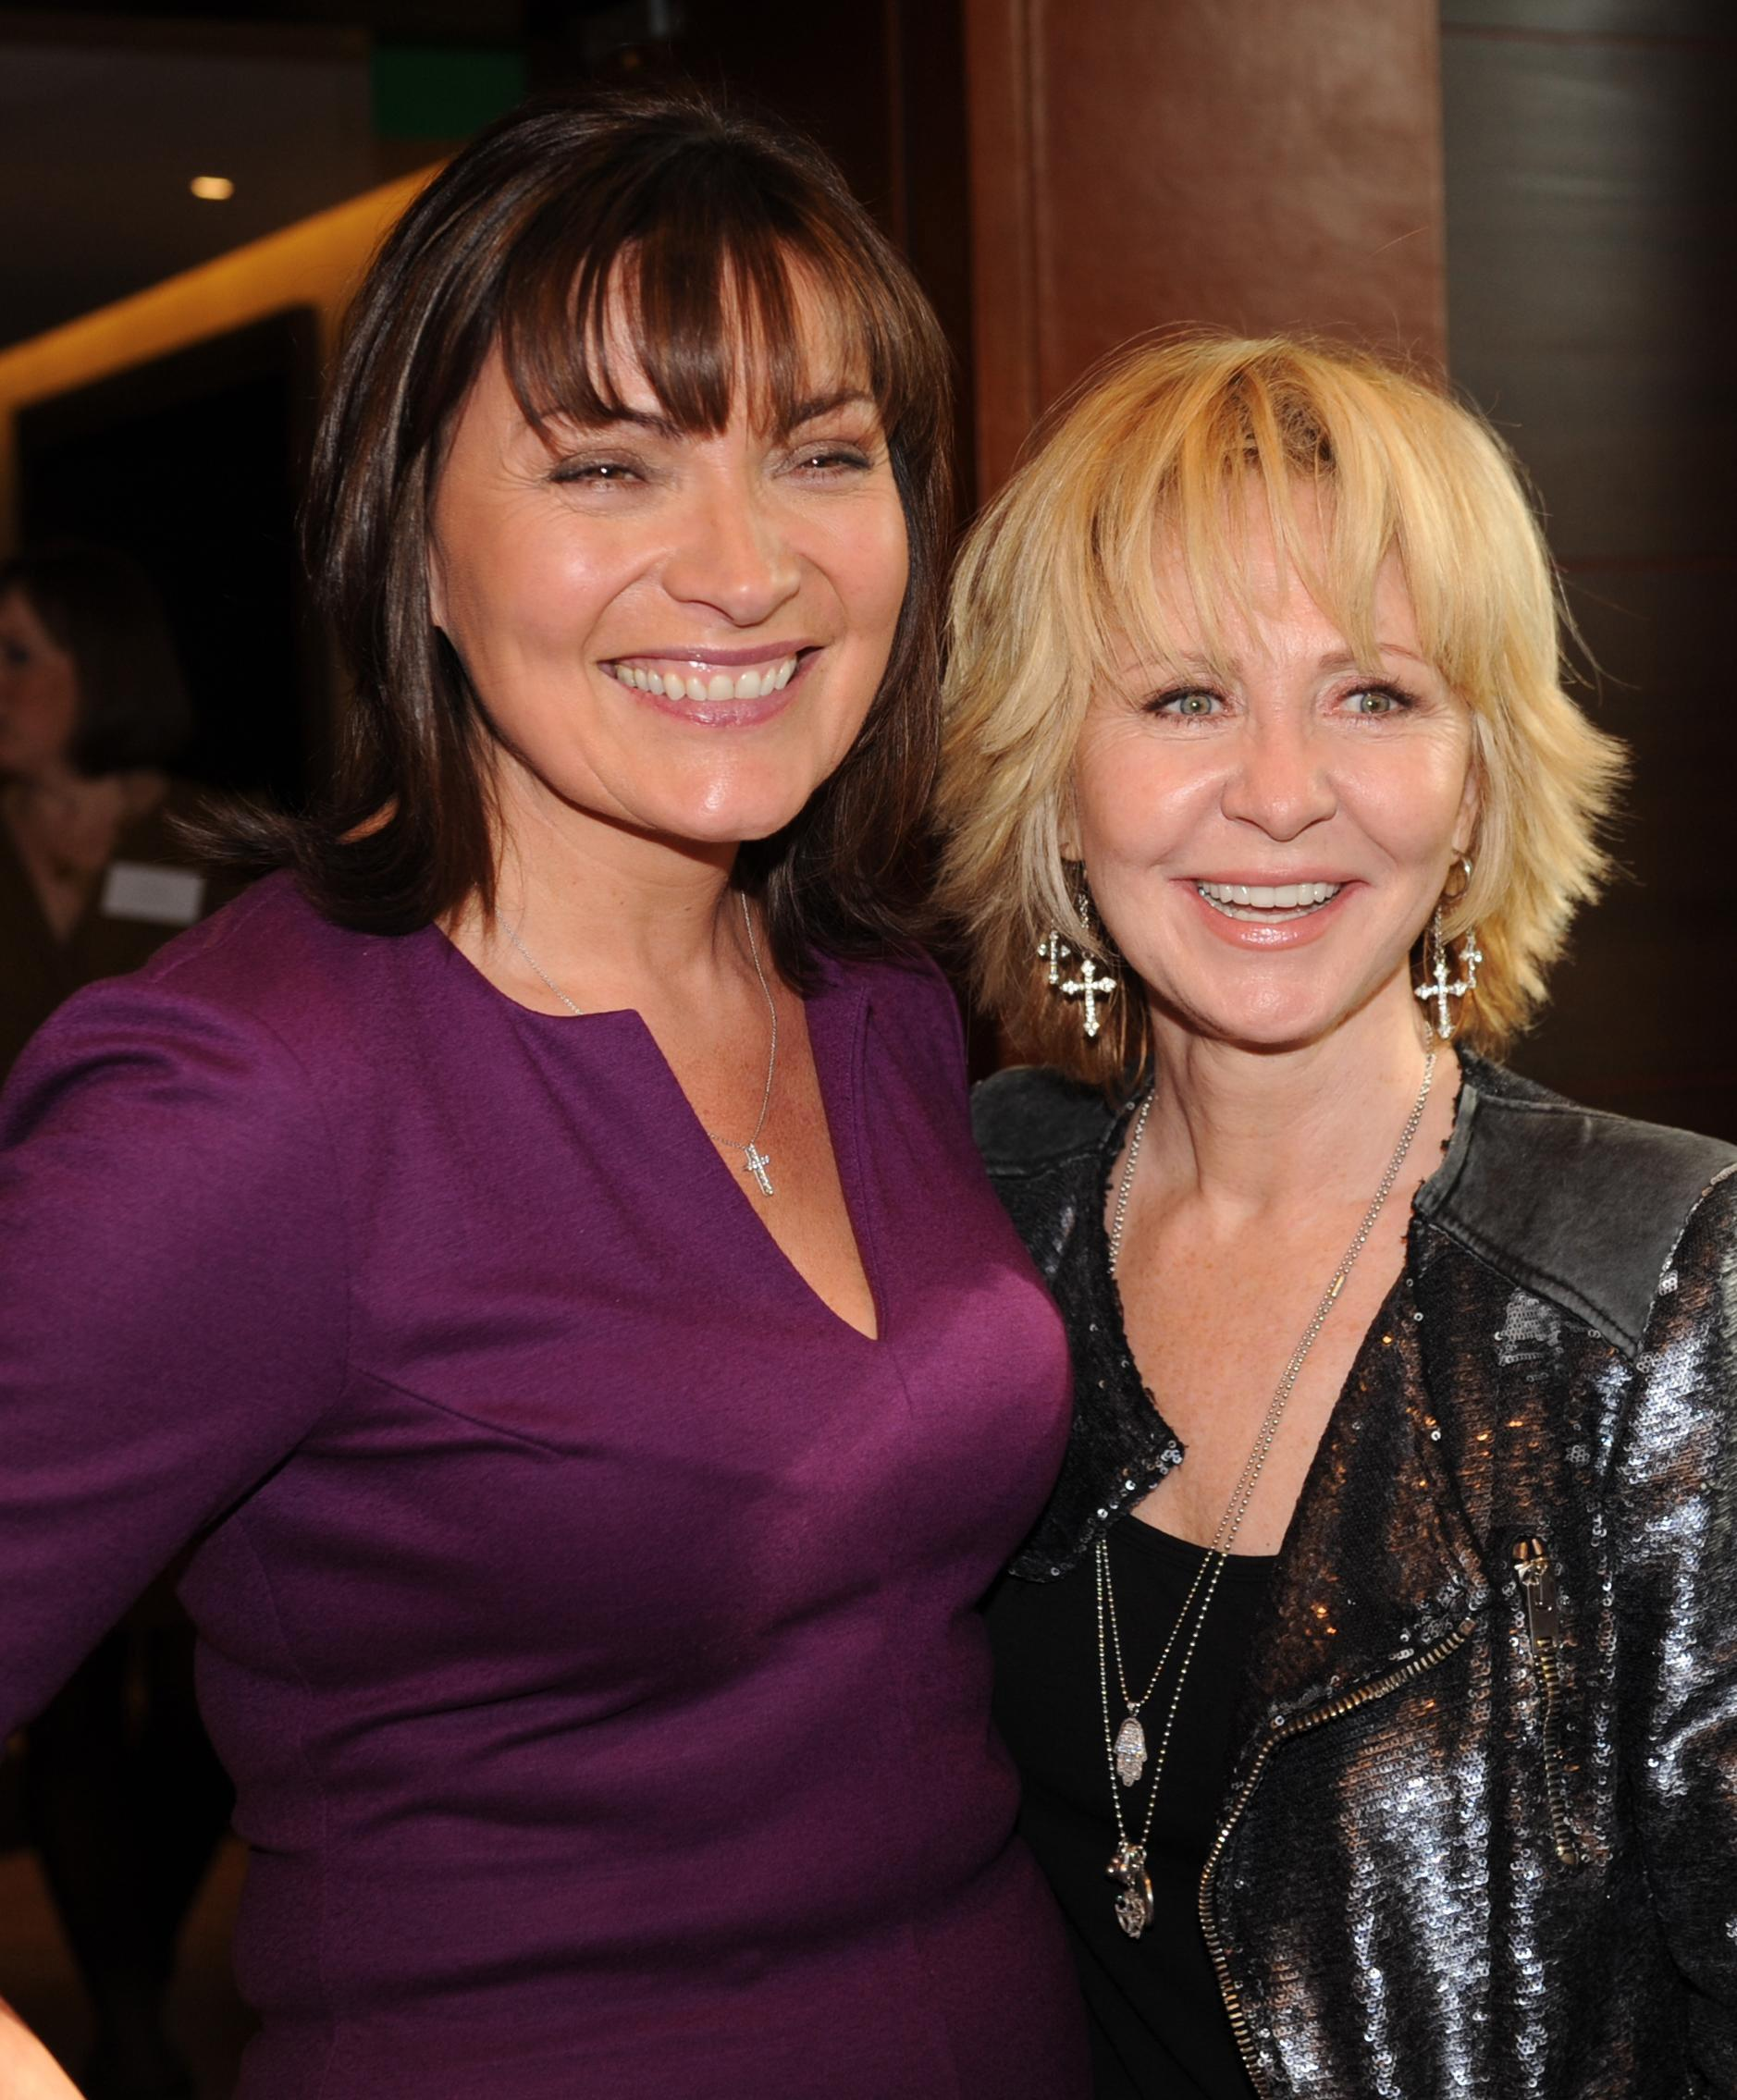 Lulu (right), winner of the 'Lifetime Achievement Award' at this year's Women of the Years awards with Lorraine Kelly at the ceremony in London today.